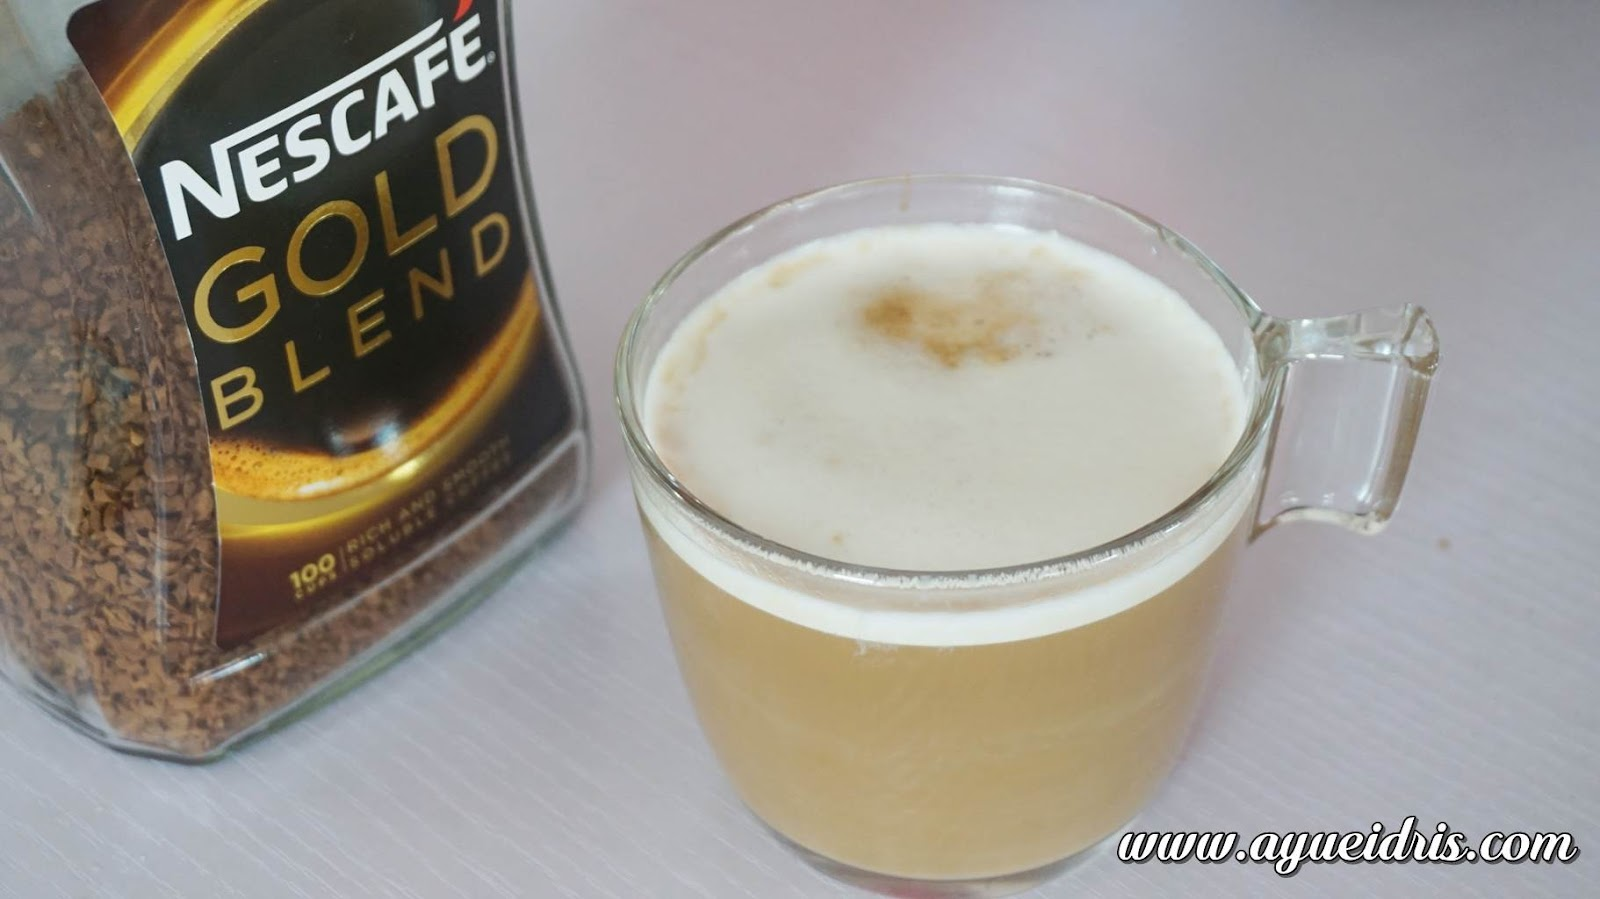 Nescafe Gold Barista Coffee Machine cara guna harga (30).JPG